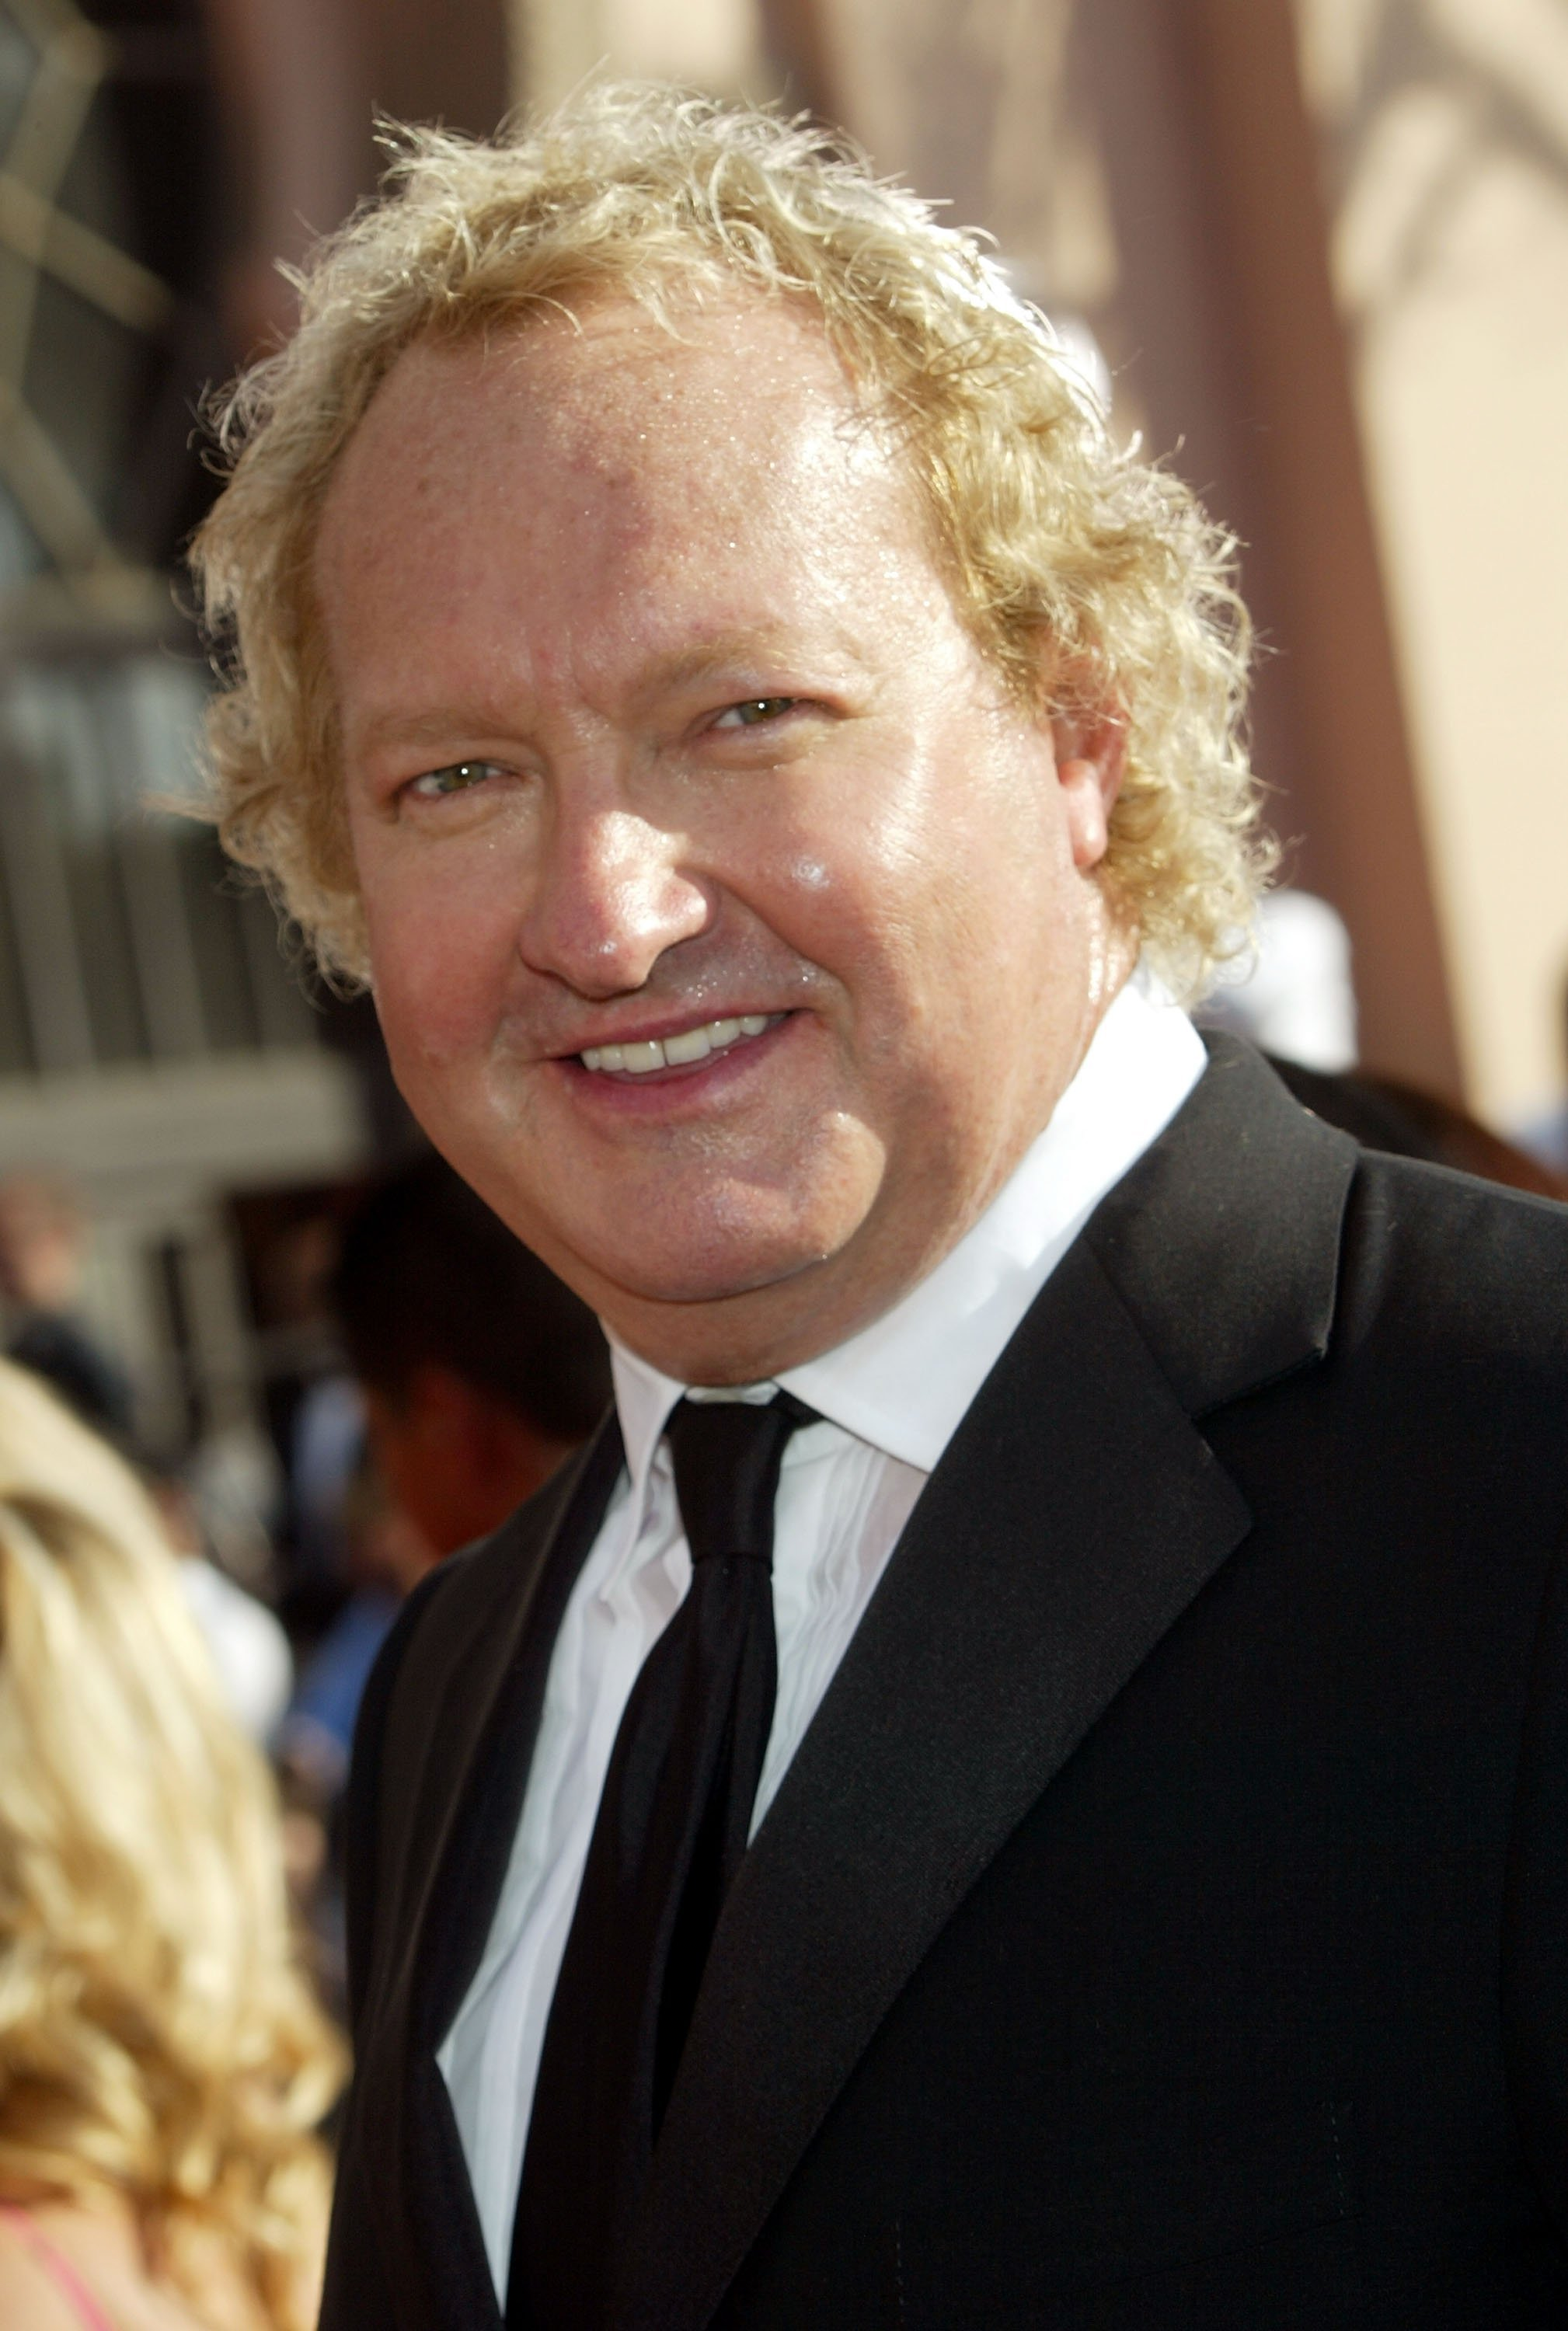 Randy Quaid arrives at the 57th Annual Emmy Awards held at the Shrine Auditorium on September 18, 2005, in Los Angeles, California. | Source: Getty Images.